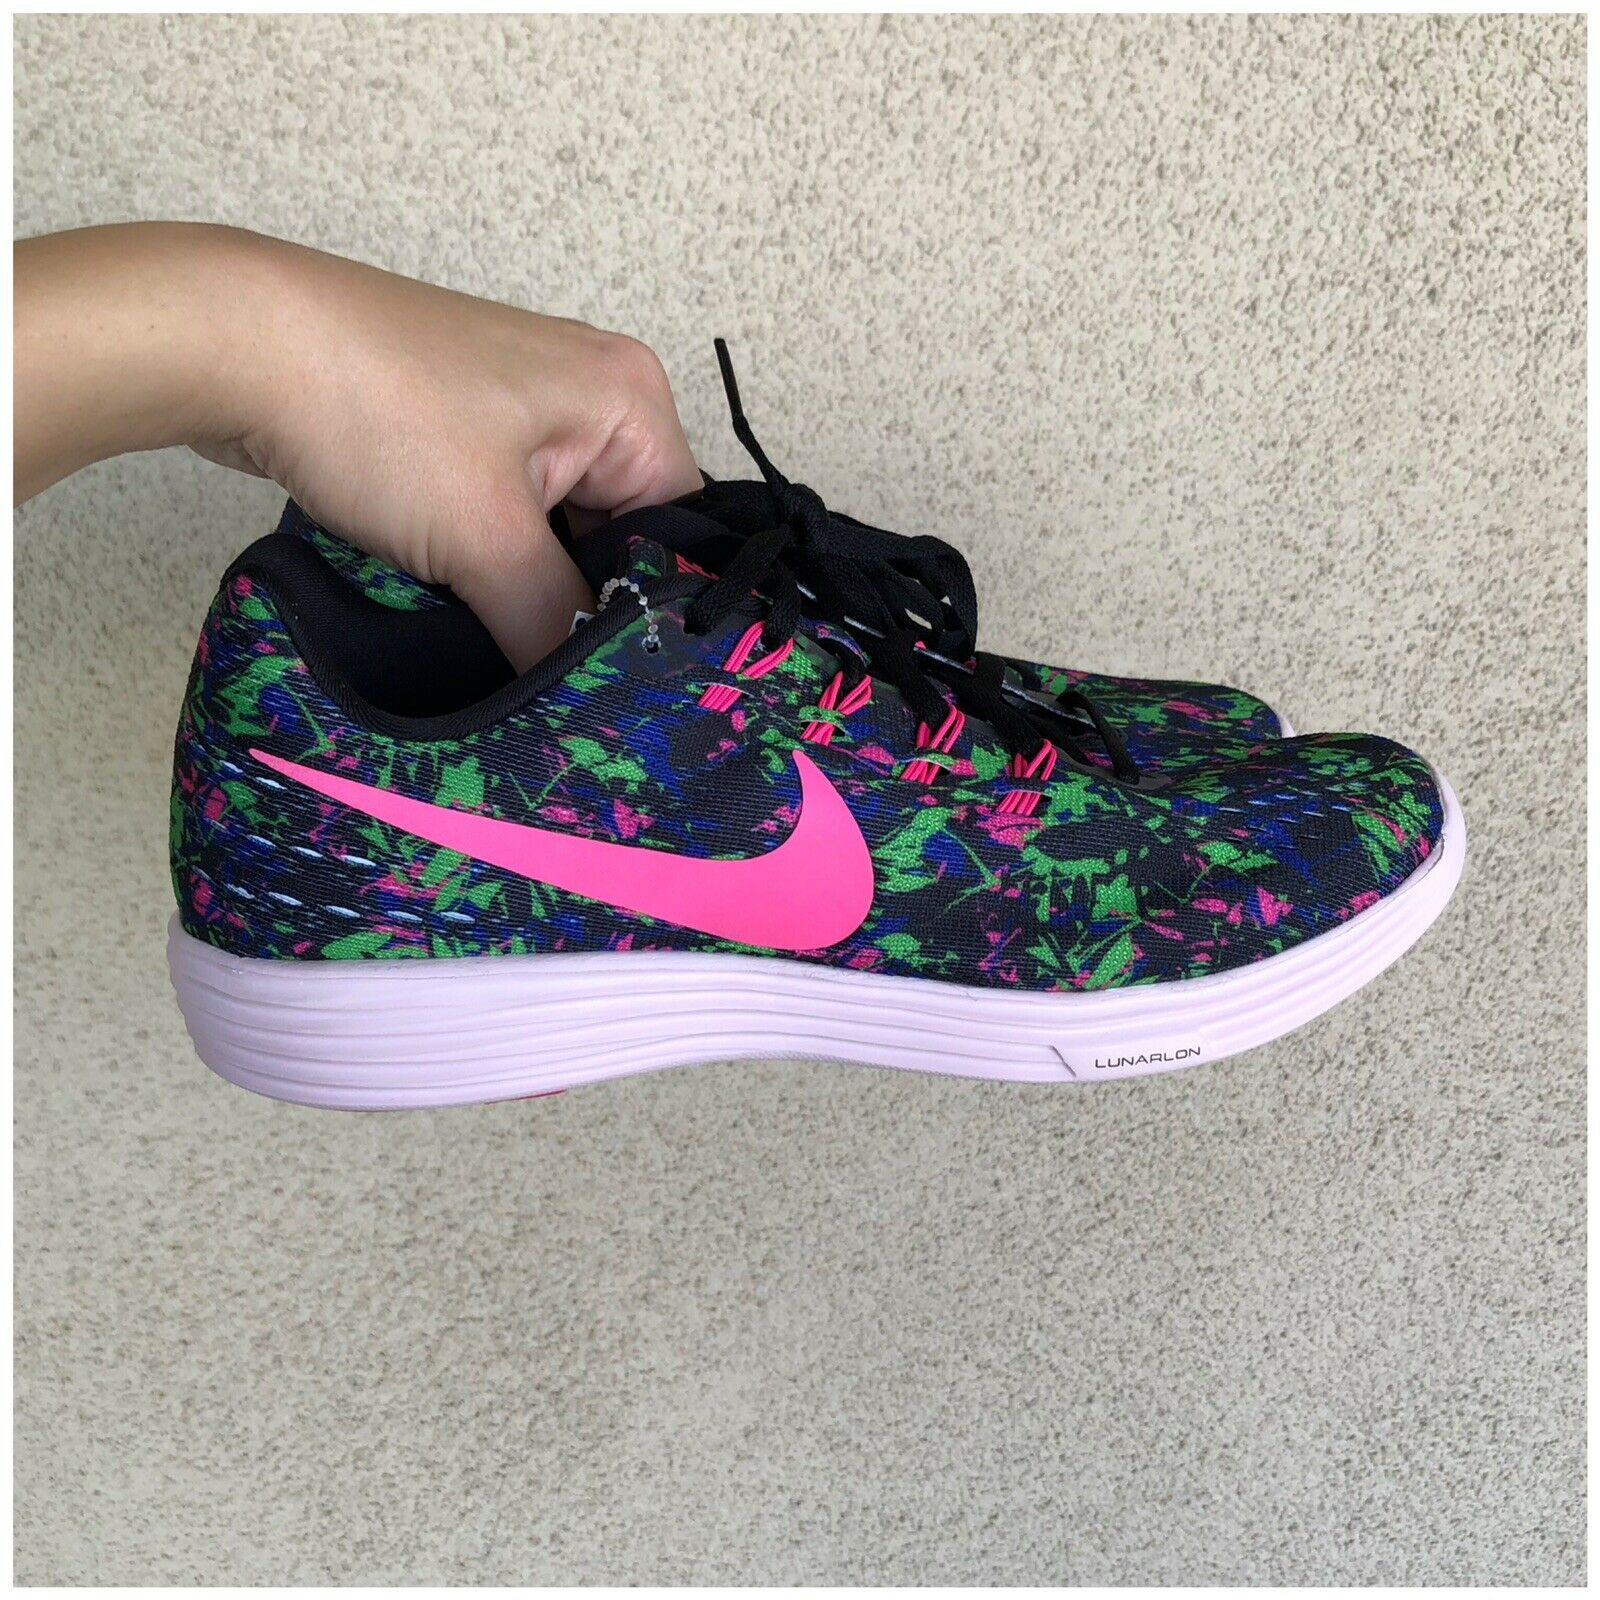 finest selection 76ad8 998bf NEW Nike Lunartempo 2 Floral Running shoes shoes shoes ...